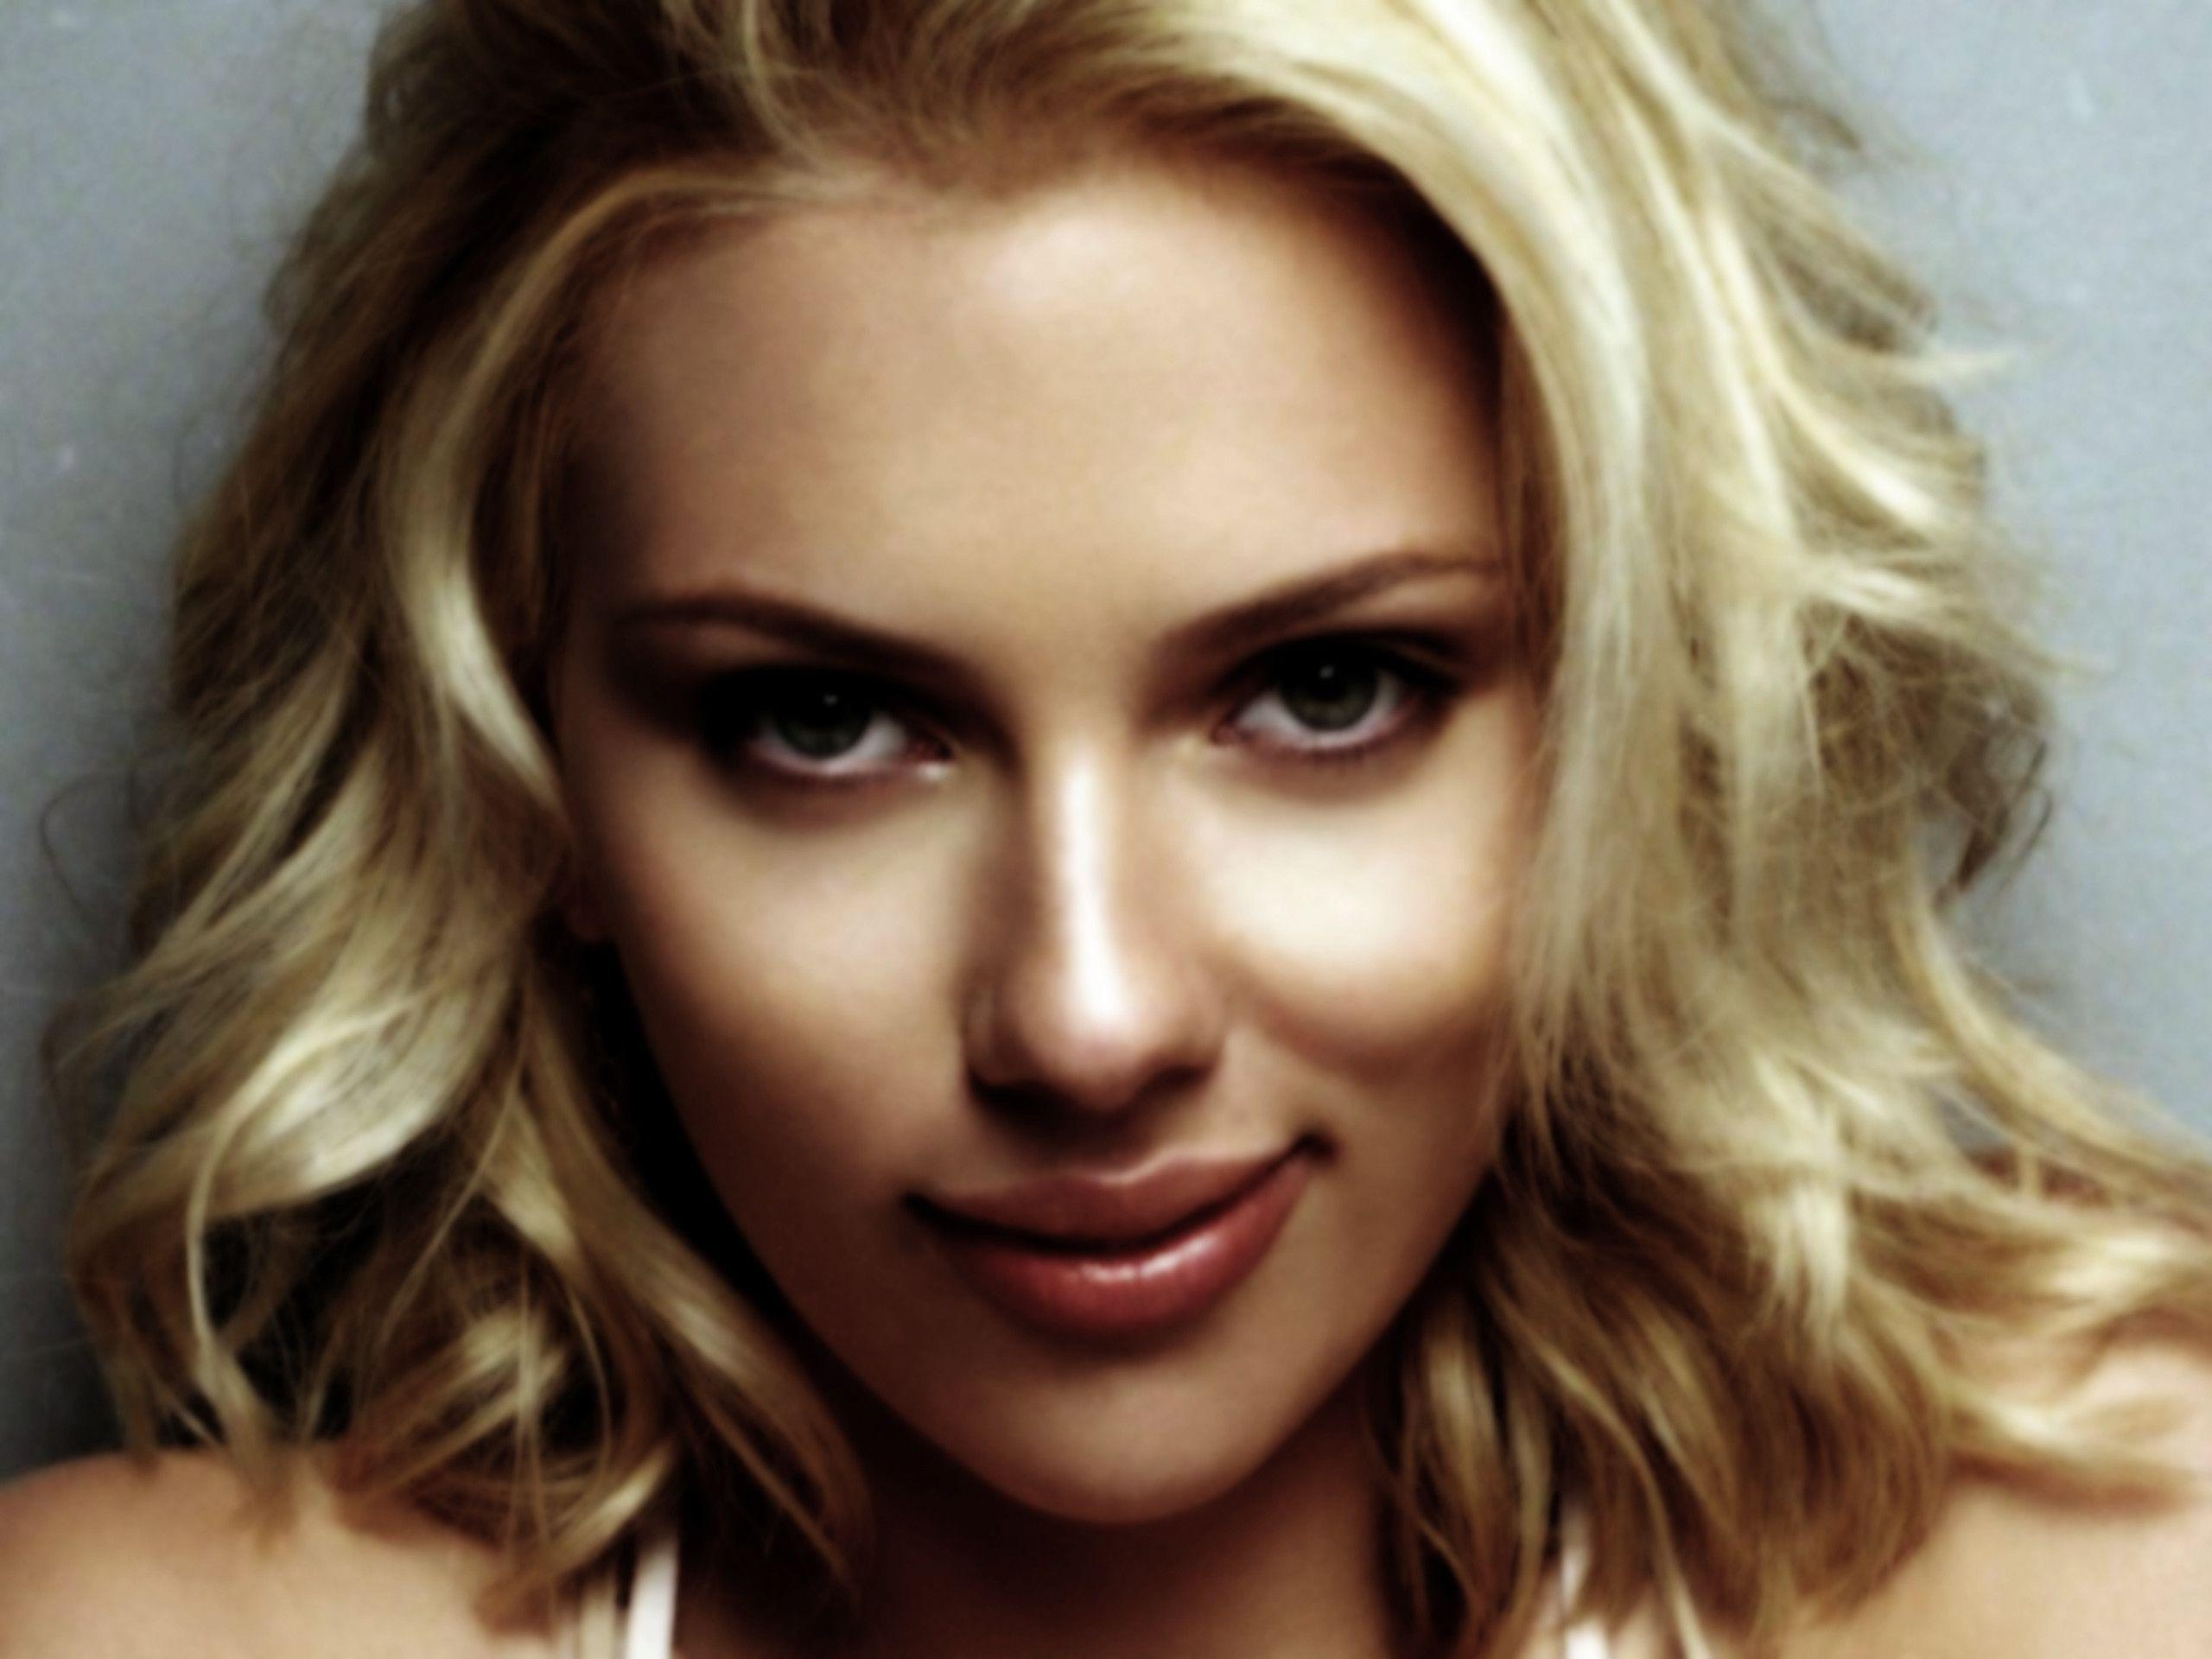 scarlett johansson wallpapers | Full Masala